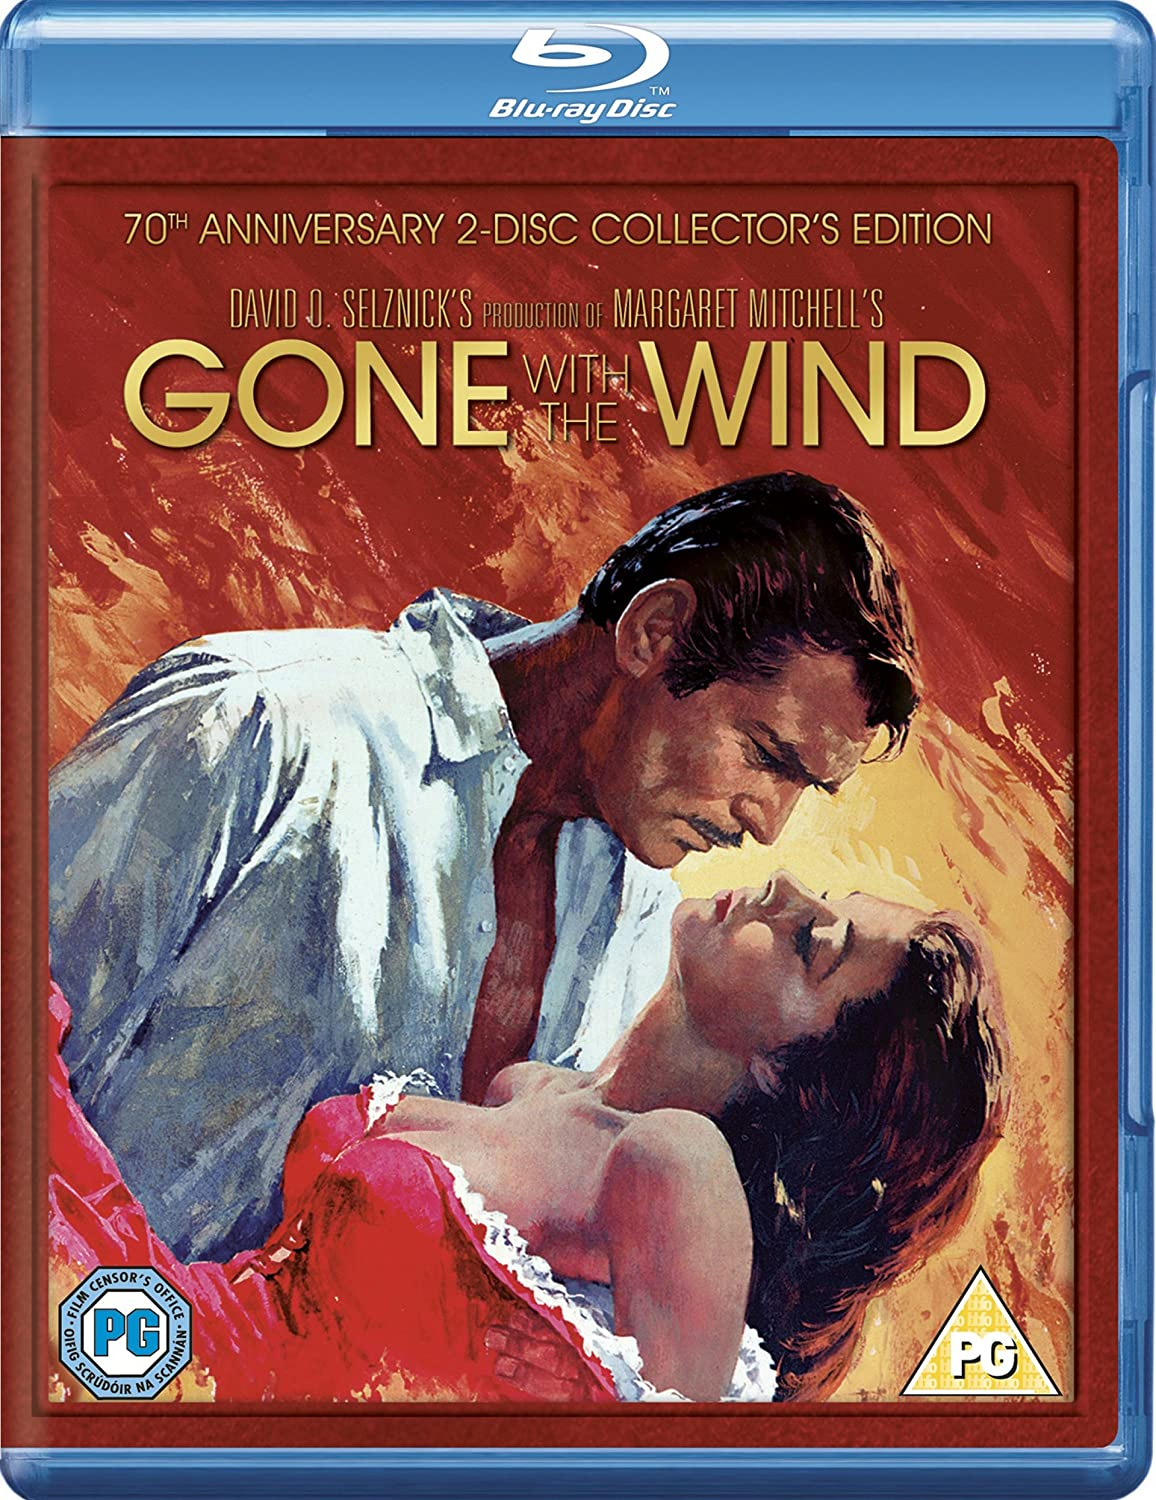 Gone With The Excellent Wind 1939 Region Free Blu-ray Super intense SALE